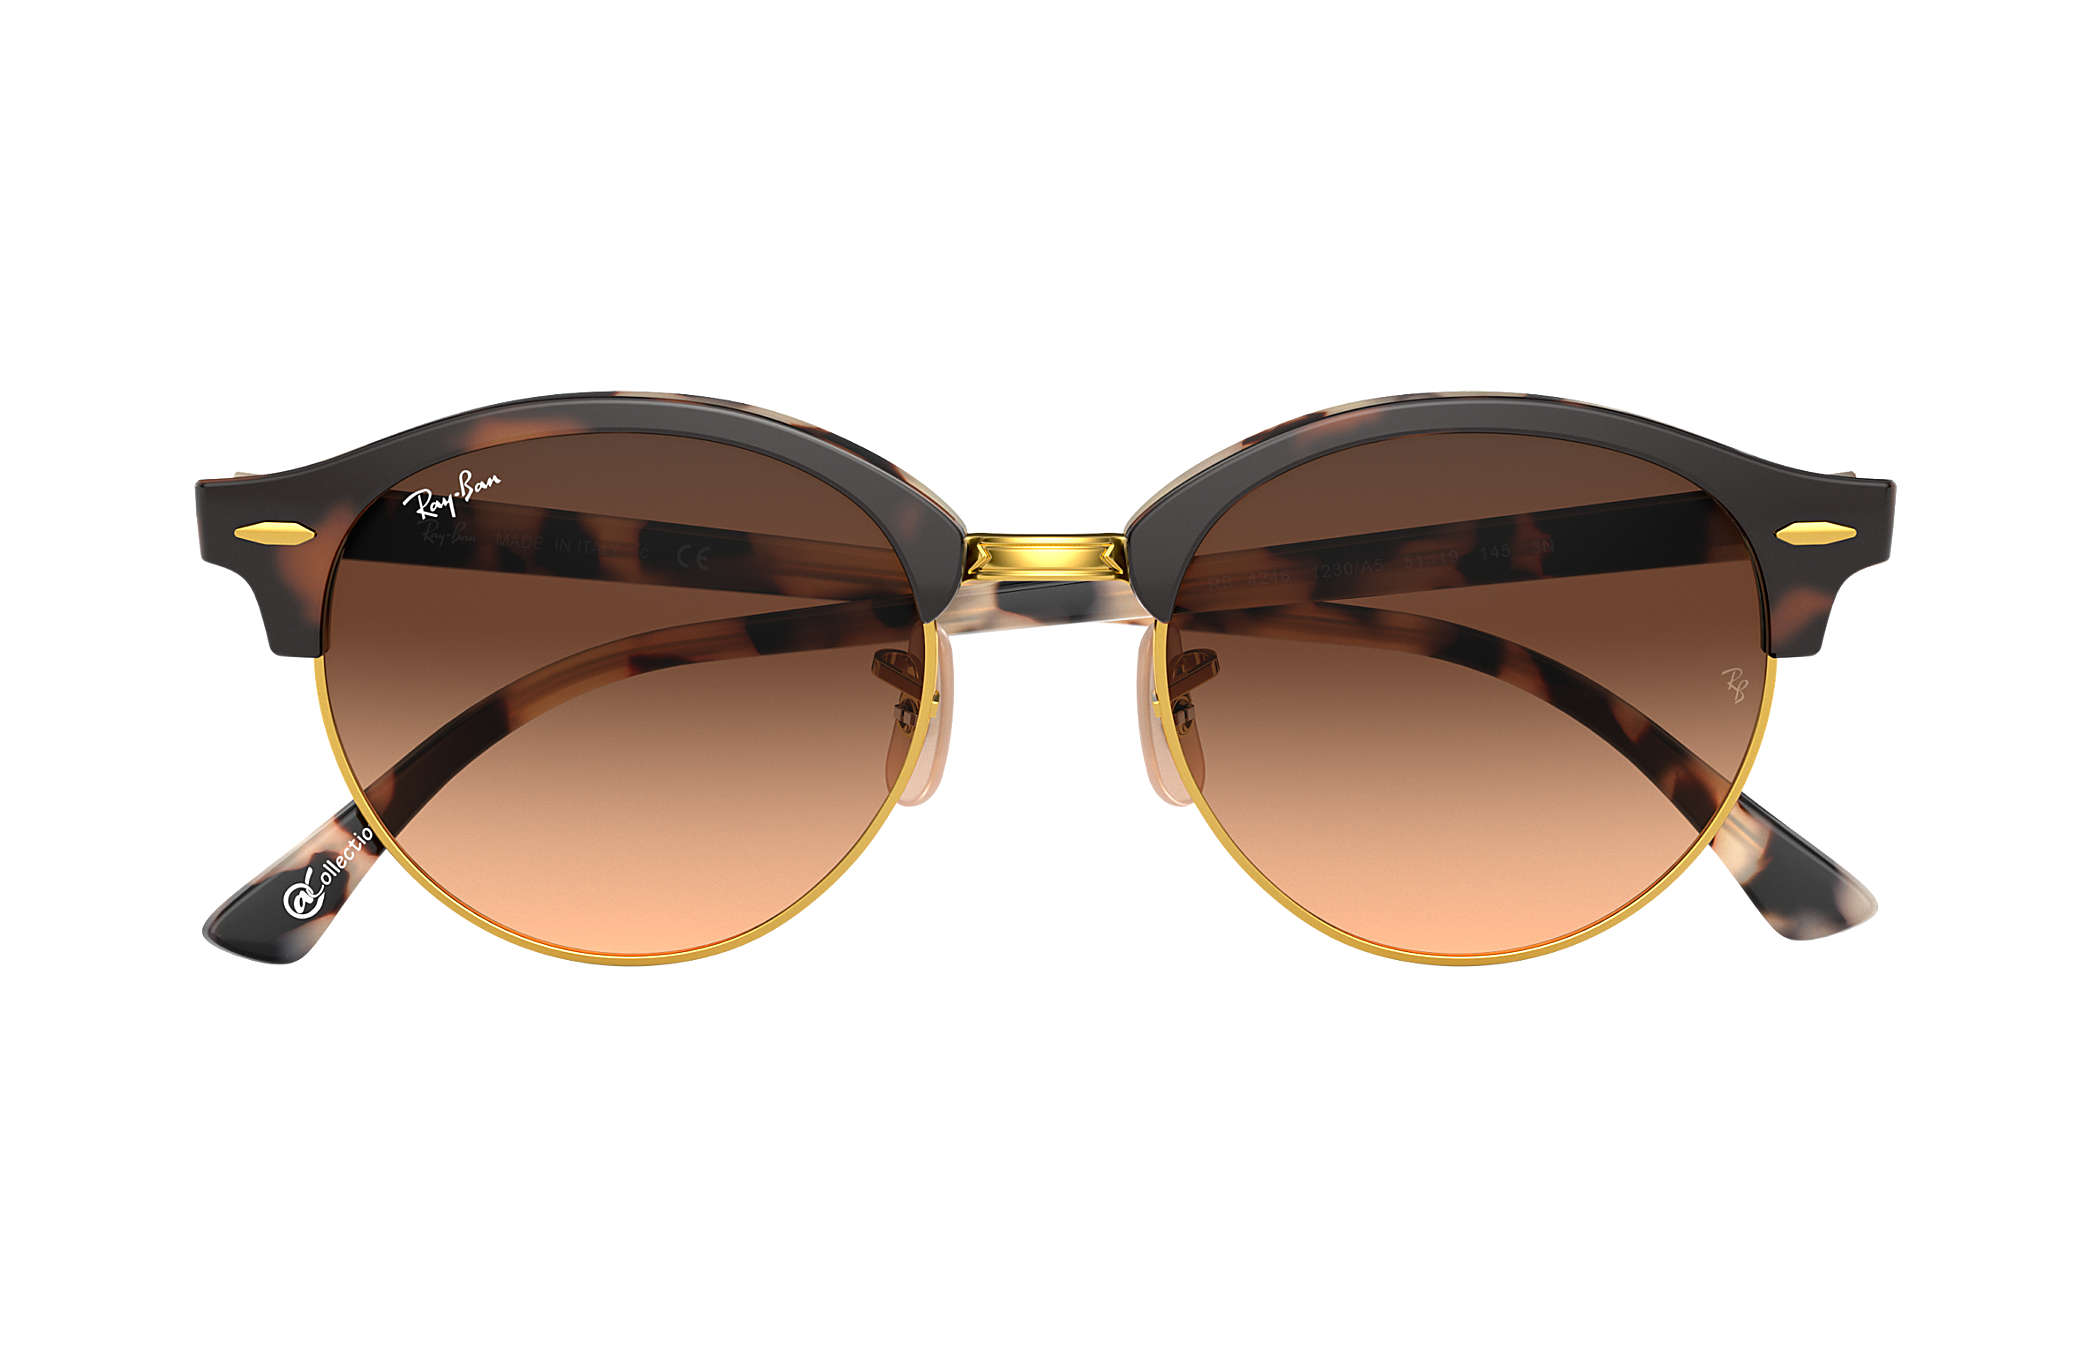 7c1d2f5eec Ray-Ban 0RB4246-CLUBROUND @Collection Habana SUN. image zoomed. Ray-Ban  0RB4246-CLUBROUND ...